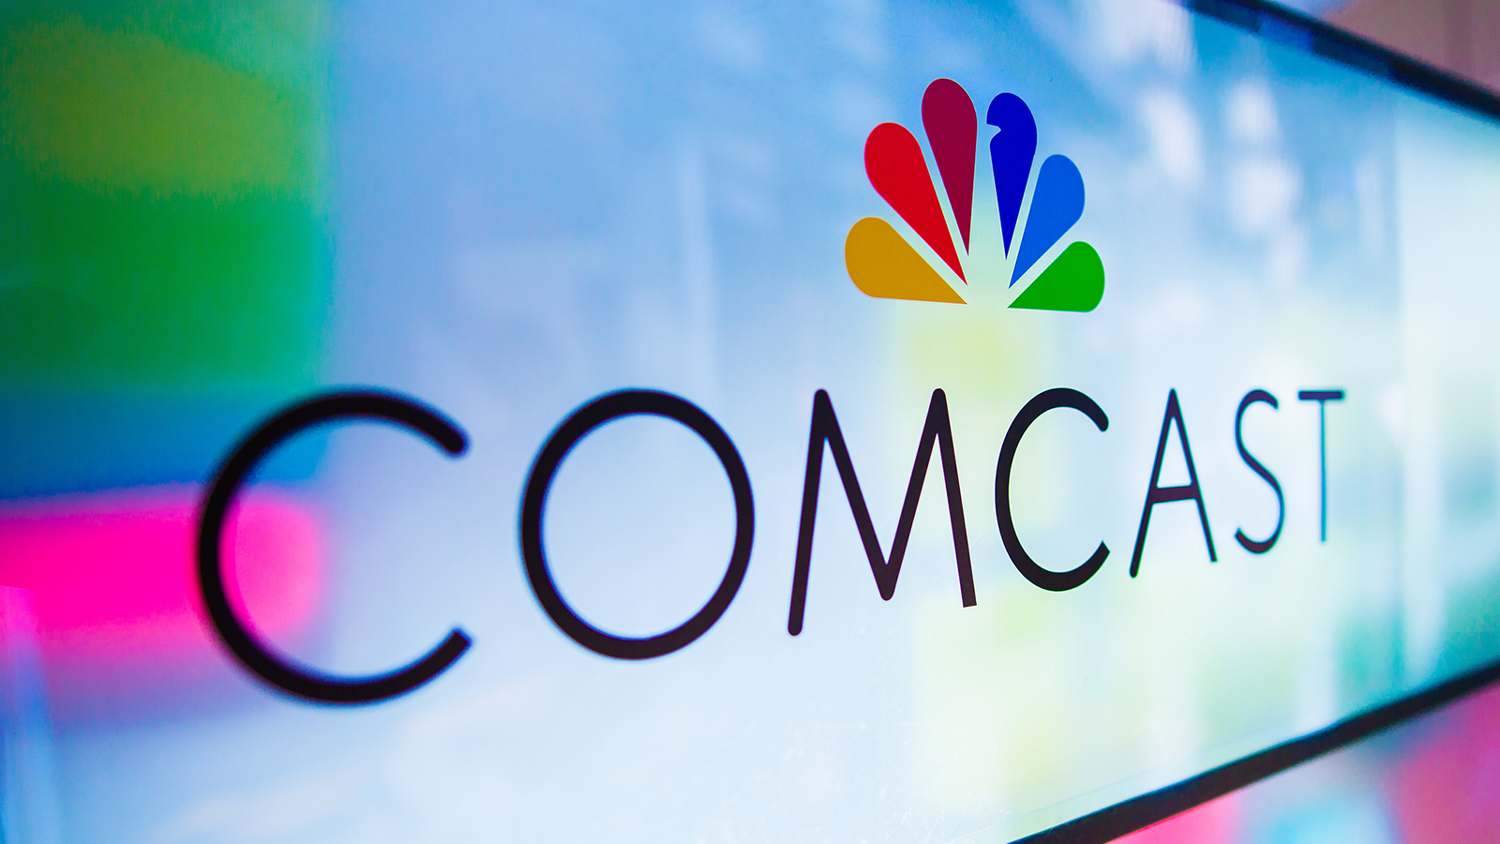 Trump quotes trade group saying Comcast violates antitrust law